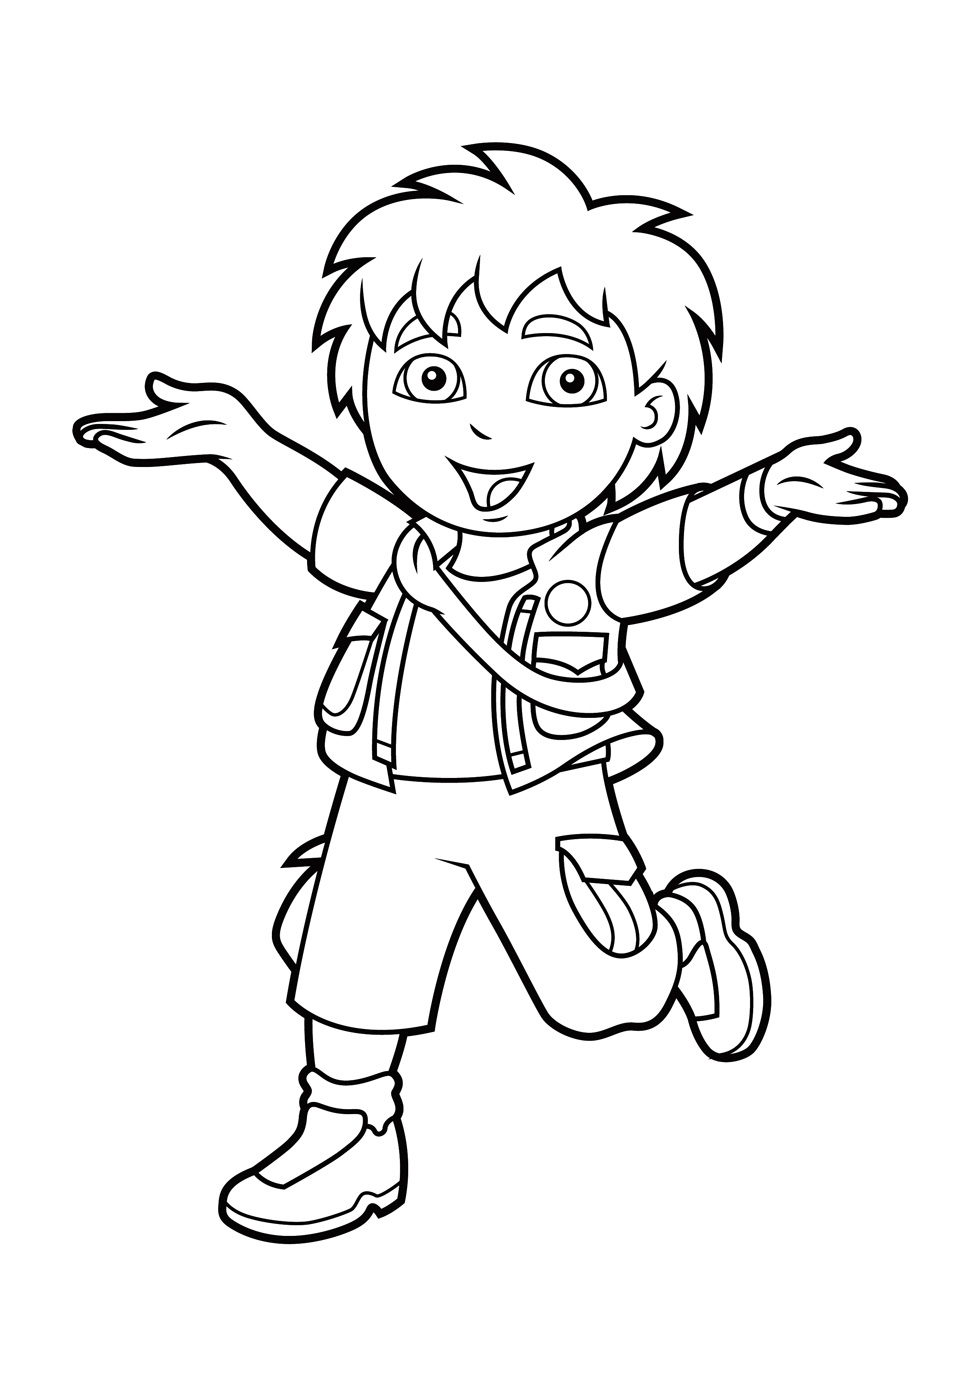 Printable Diego Coloring Pages   ColoringMe.com